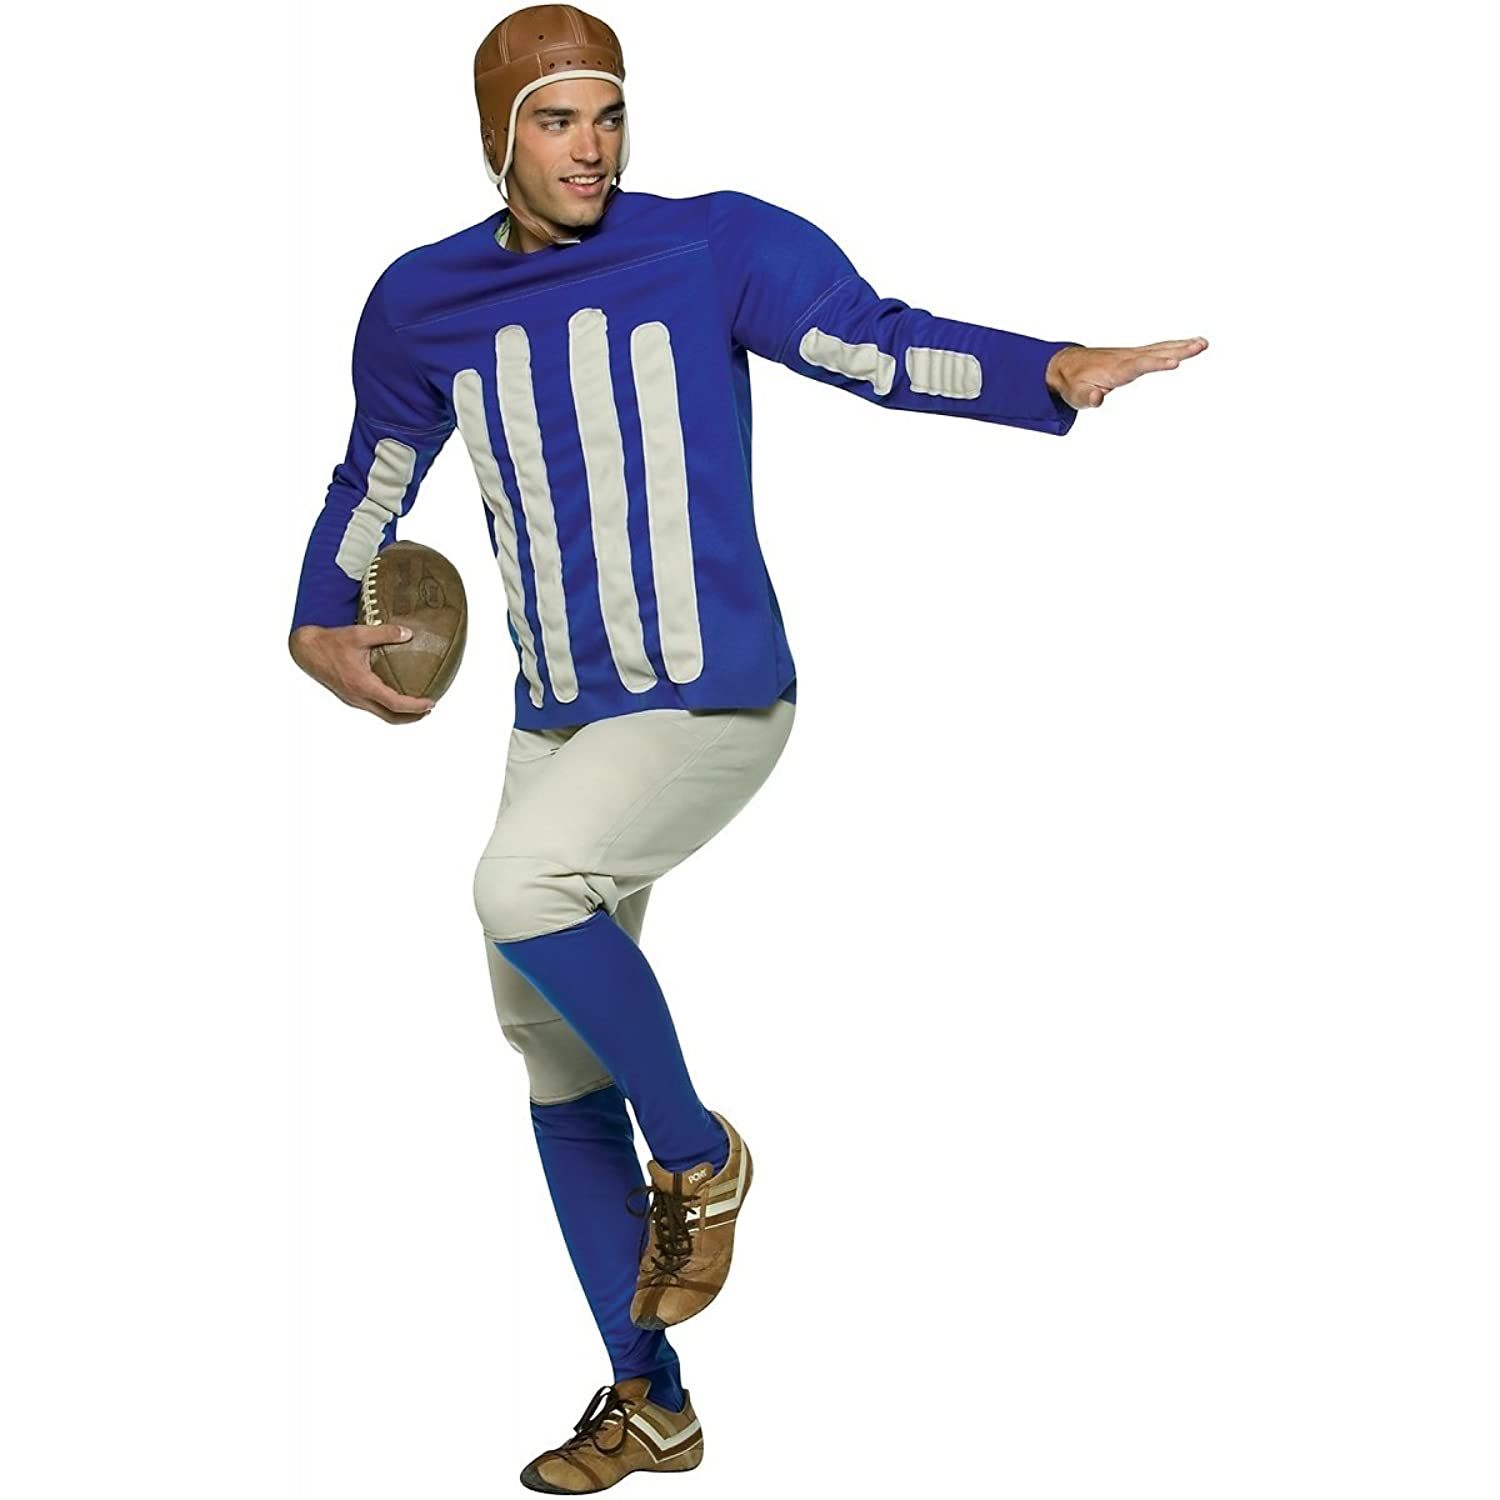 Amazon.com: Old Tyme Football Player Costume - One Size - Chest Size 48-52:  Clothing - Amazon.com: Old Tyme Football Player Costume - One Size - Chest